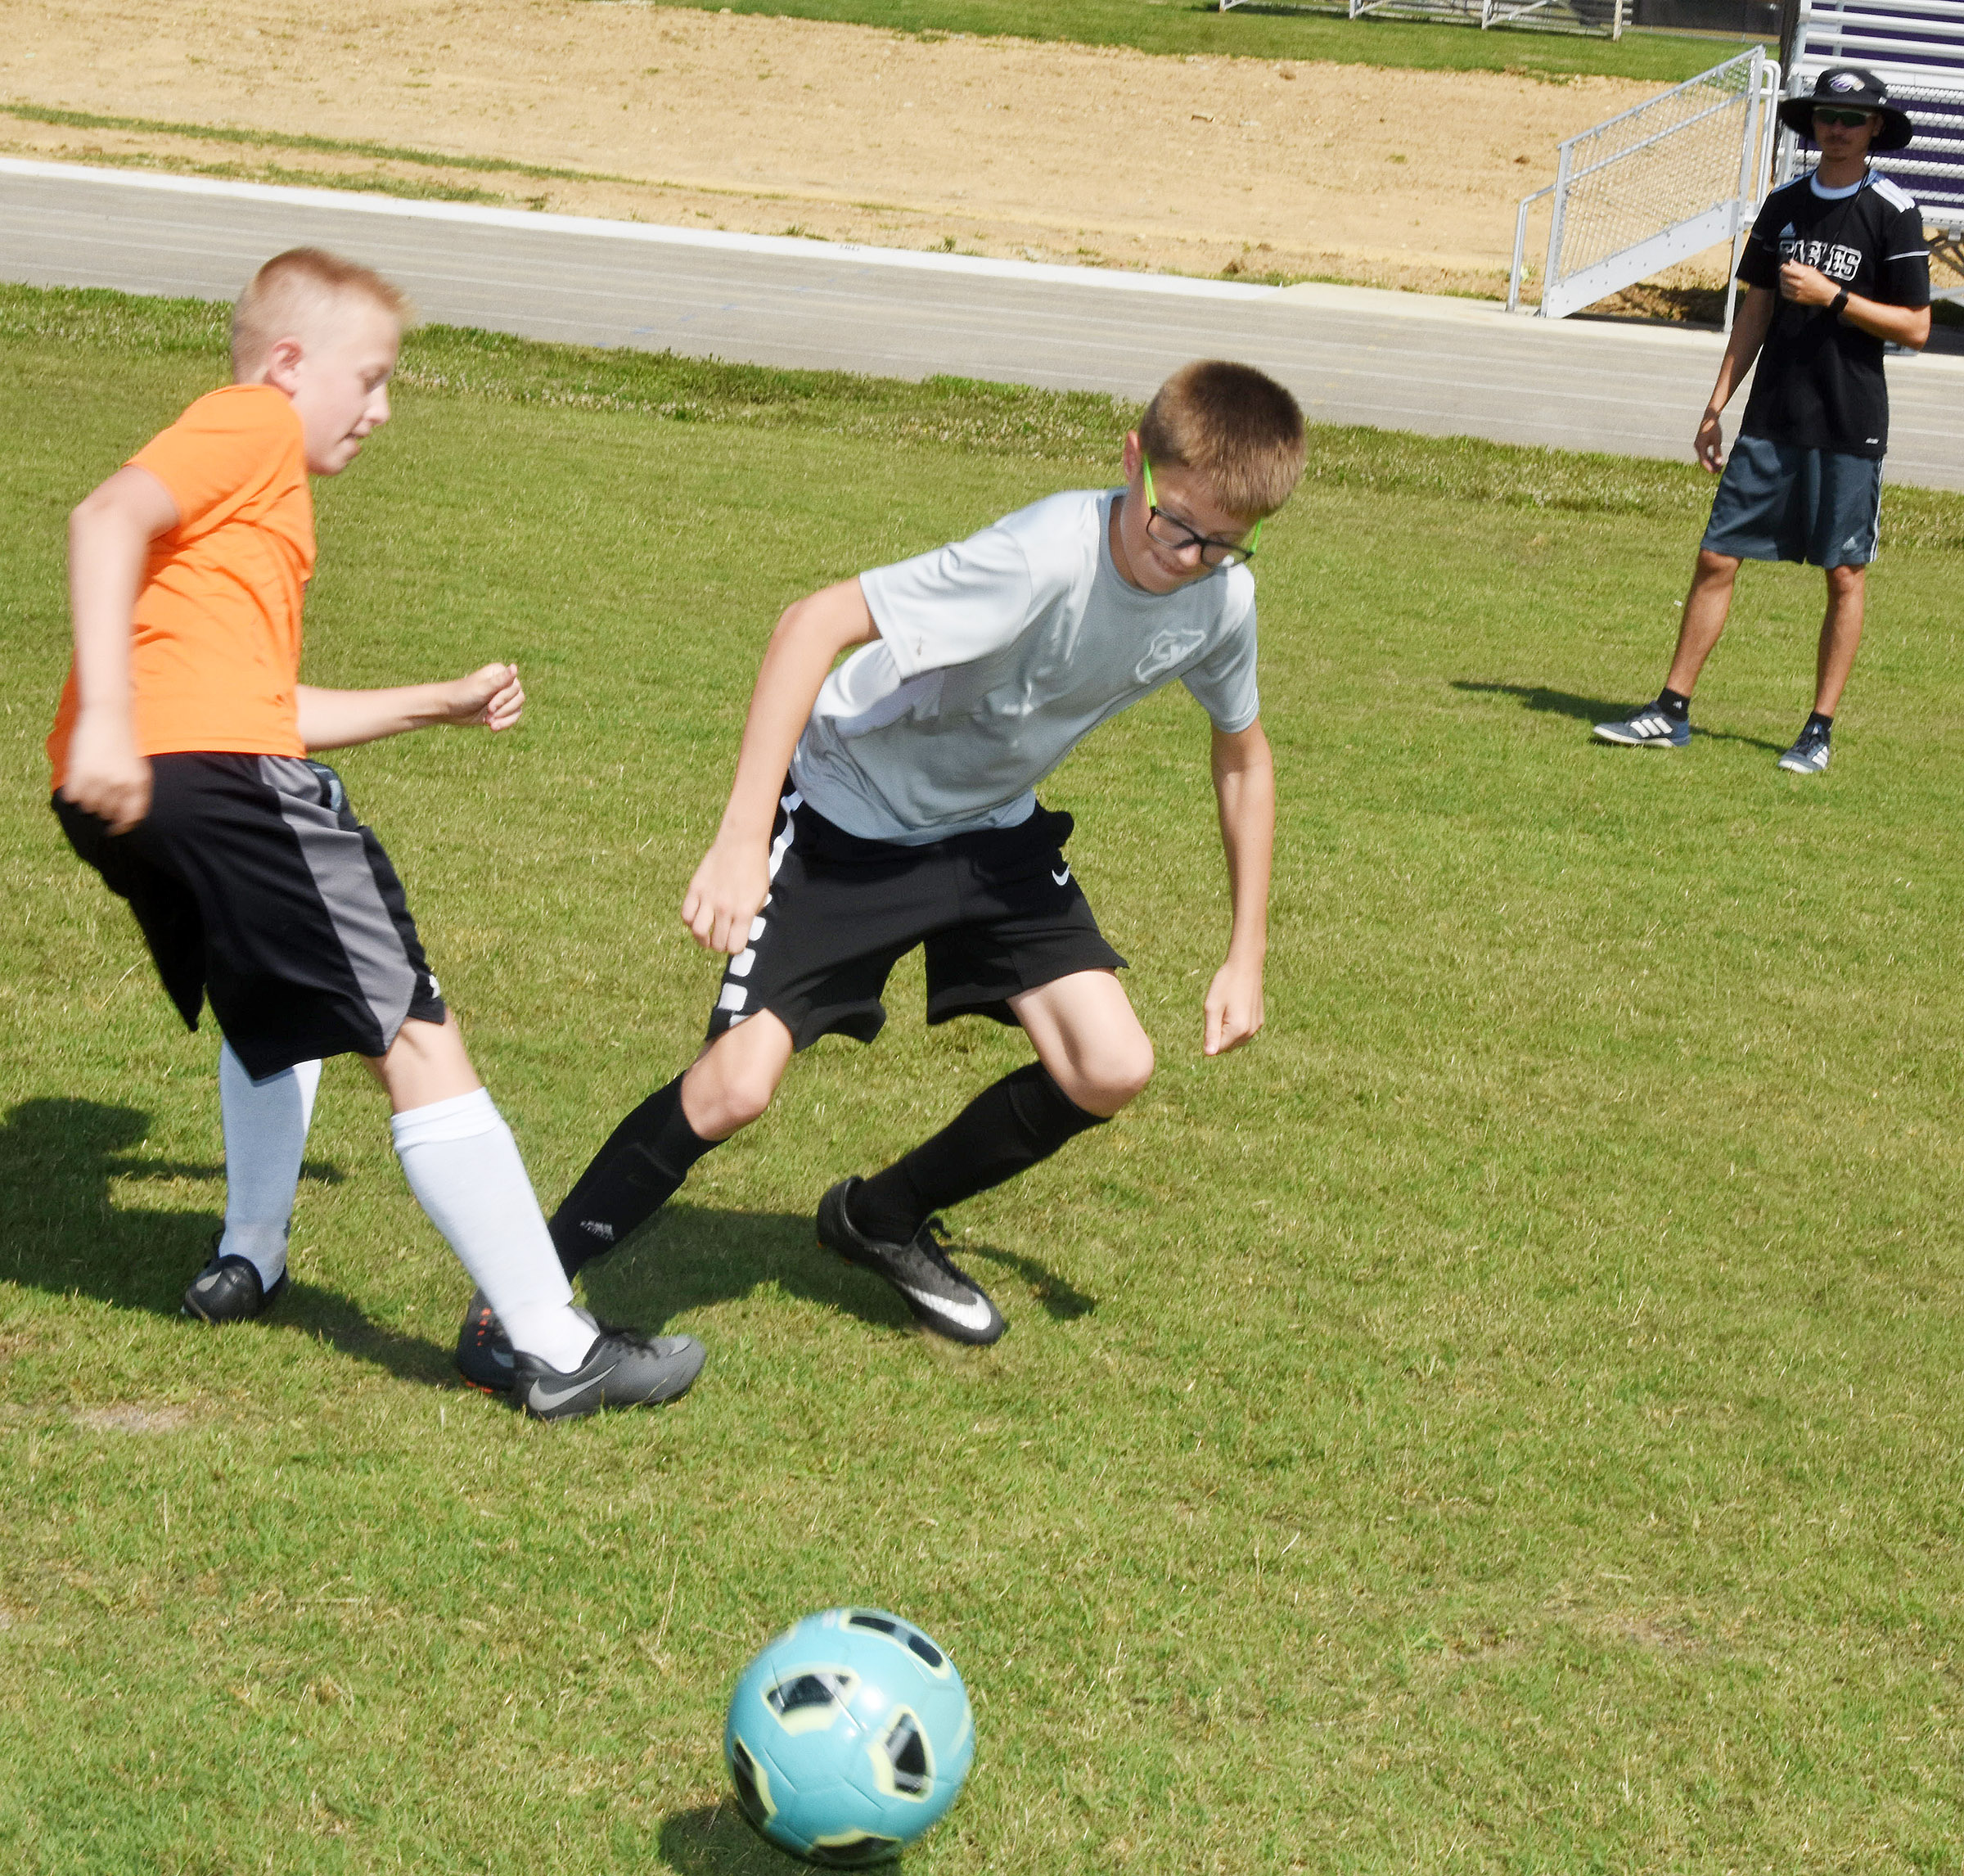 Zander Smith, at left, and Campbellsville Middle School sixth-grader Ethan Murphy compete for the ball.